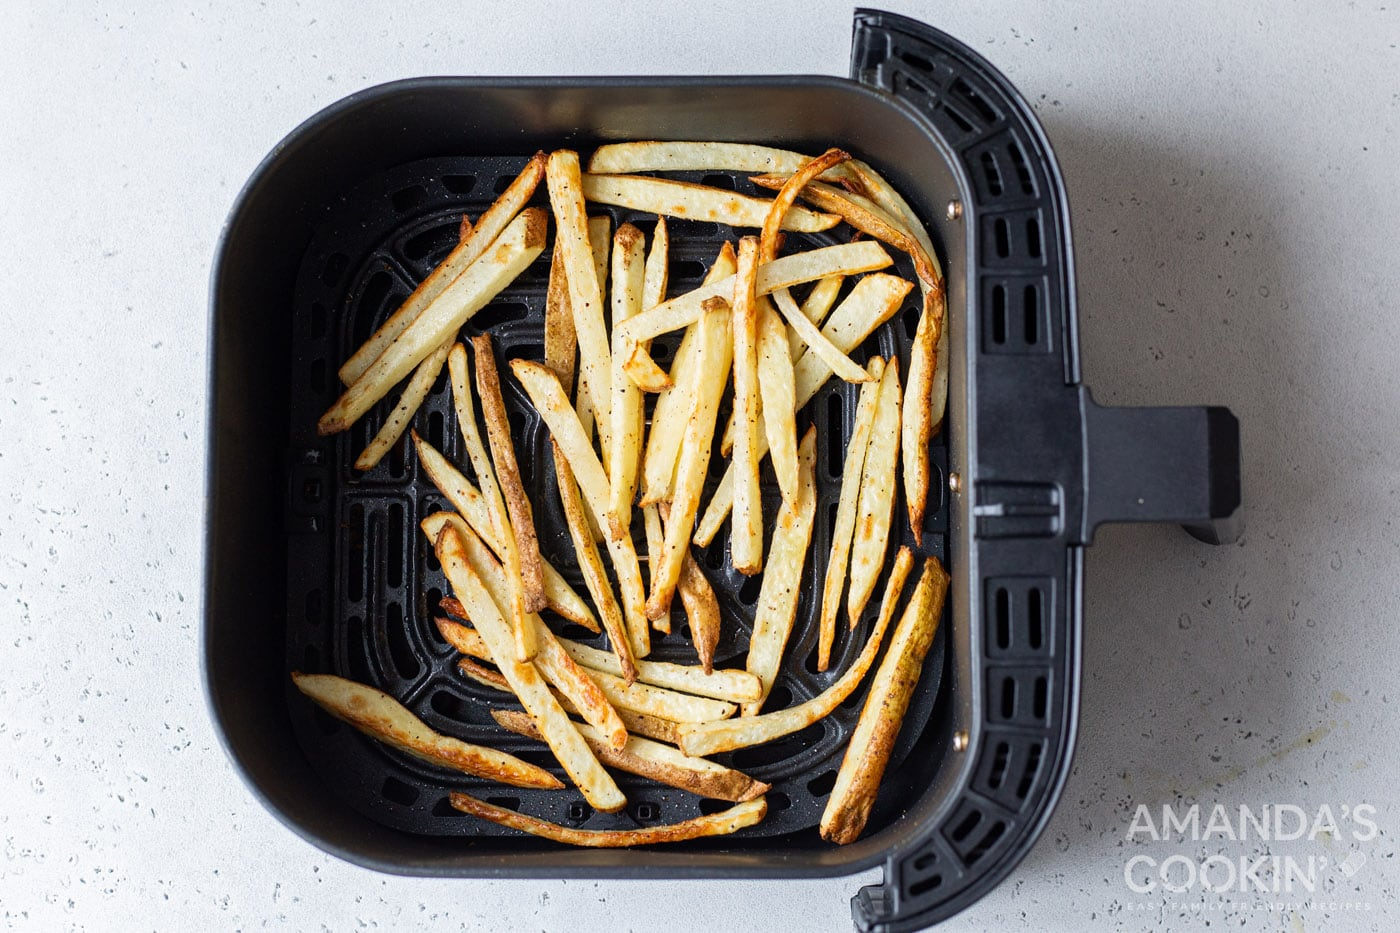 cooked potato slices in air fryer